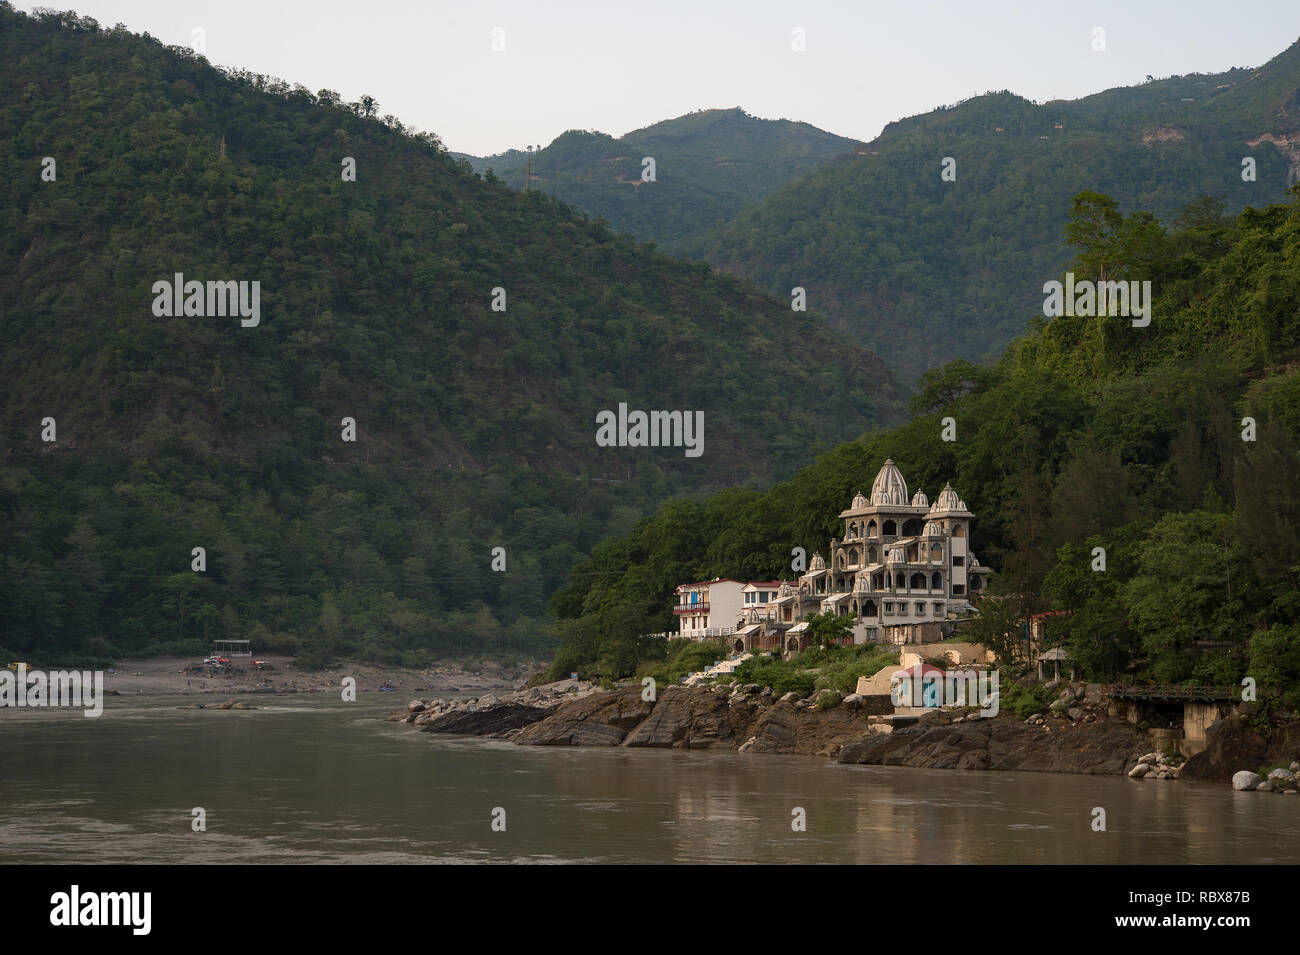 Indian Workers at work, Rishikesh, India - Stock Image